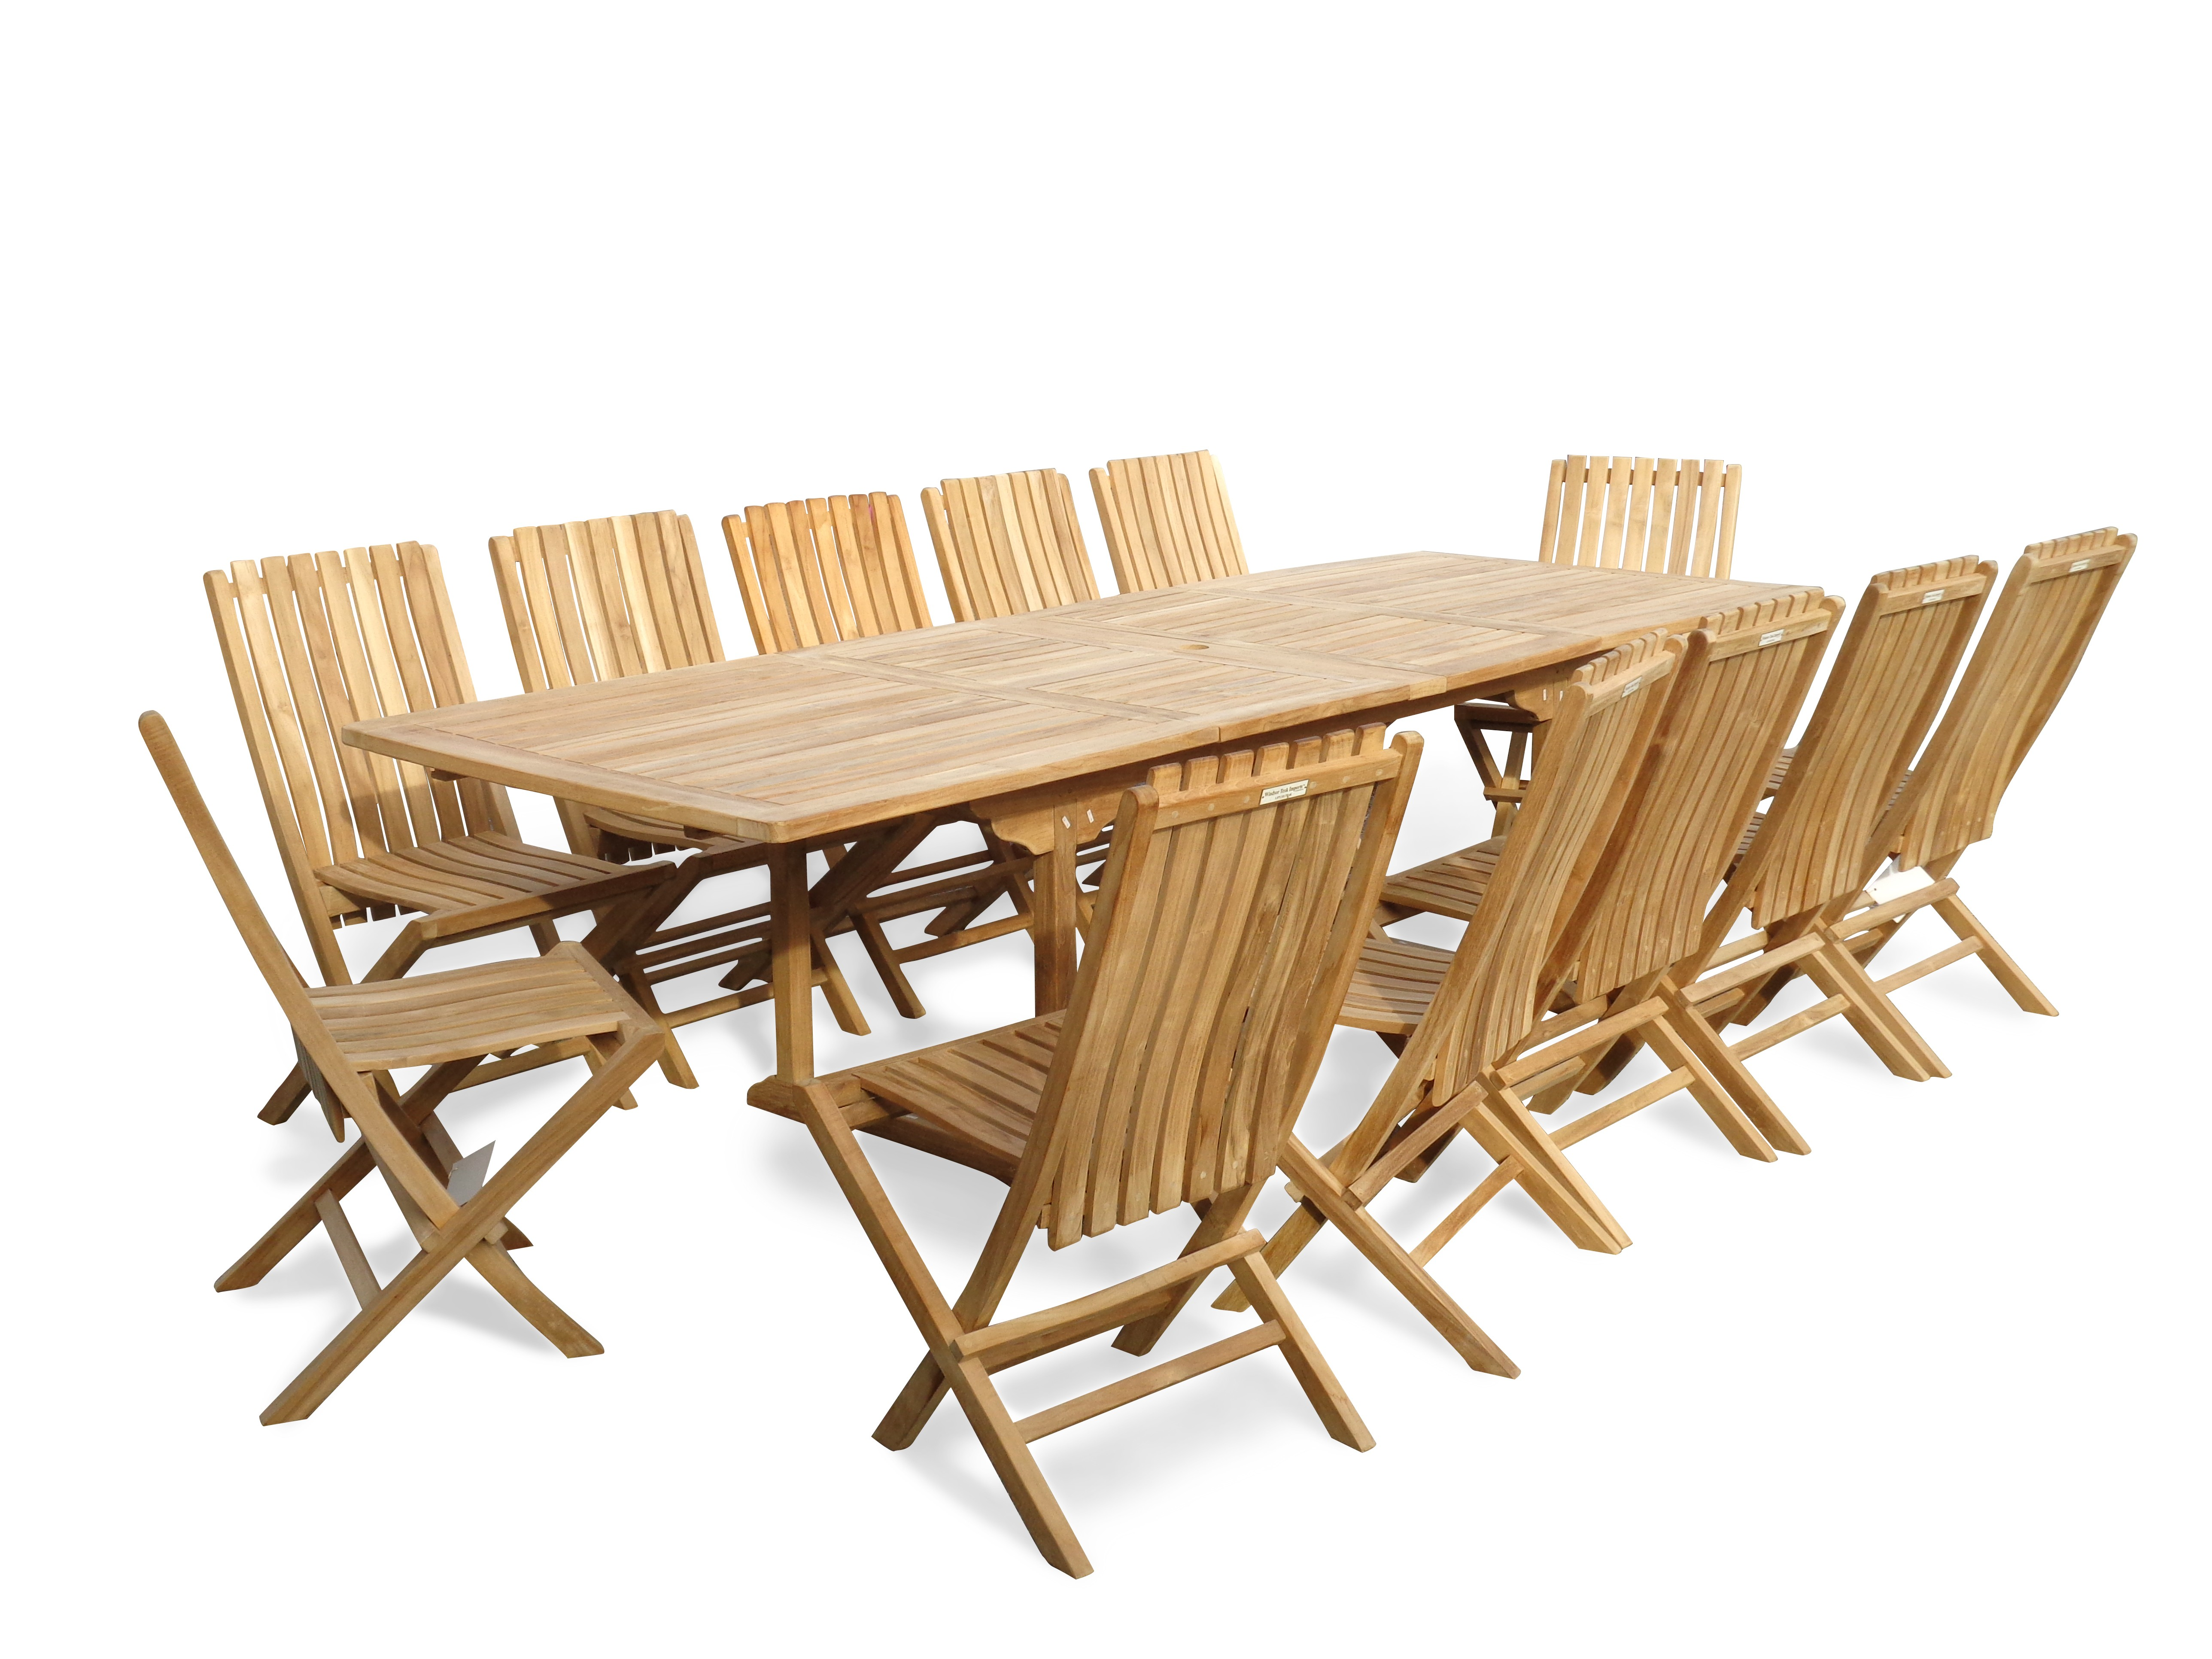 "Buckingham 108"" x 39"" Rectangular Double Leaf Extension Teak Table (9 Foot Long) W/ 12 Java Folding Chairs w Lumbar Support"